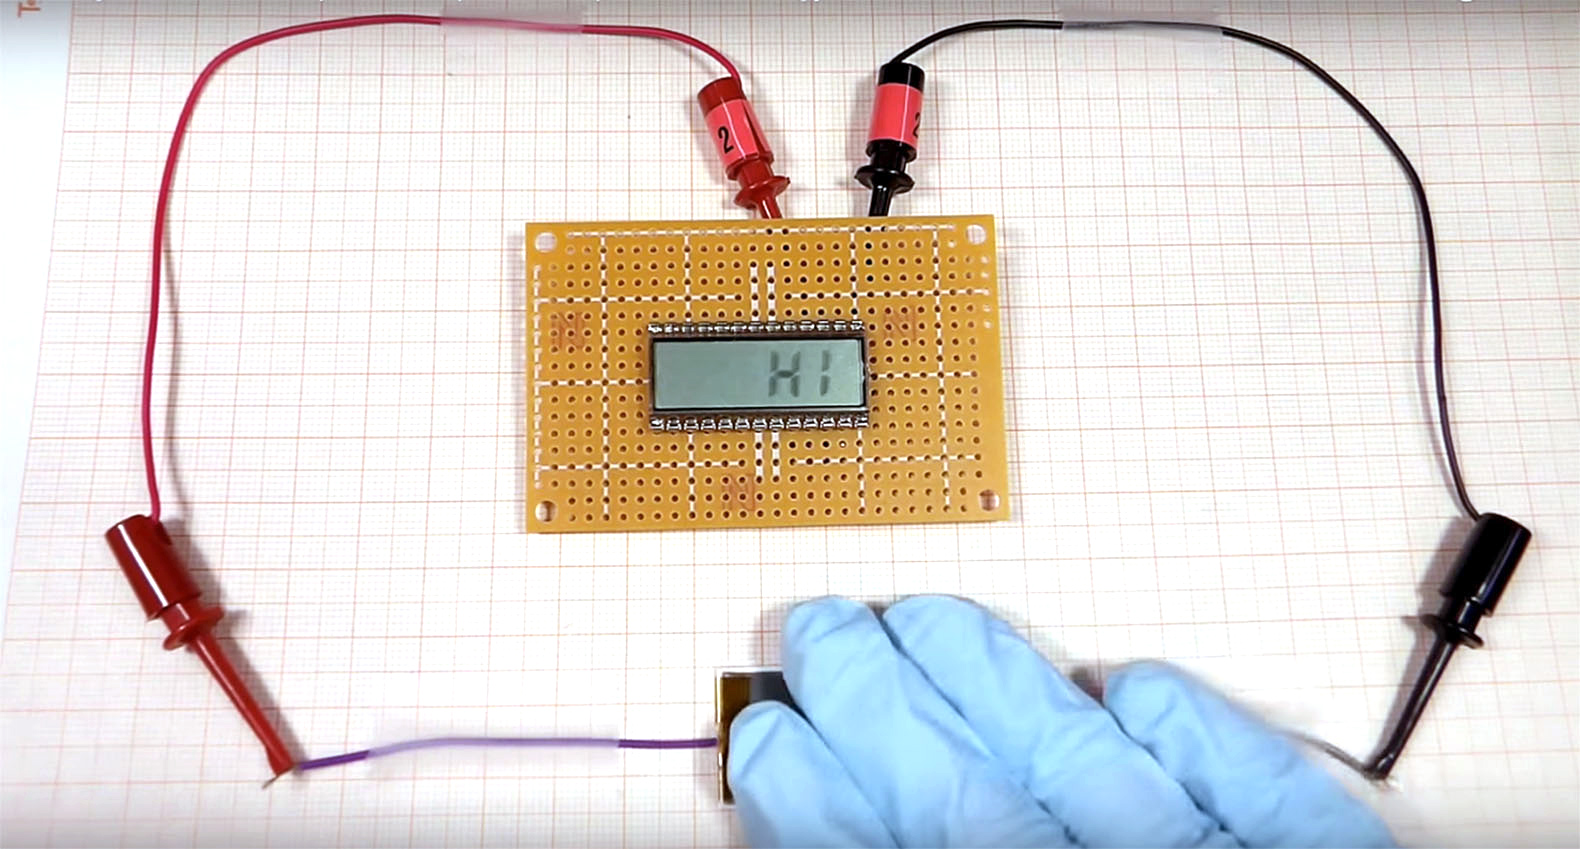 Researchers generate energy with nothing but cardboard, tape, and a pencil